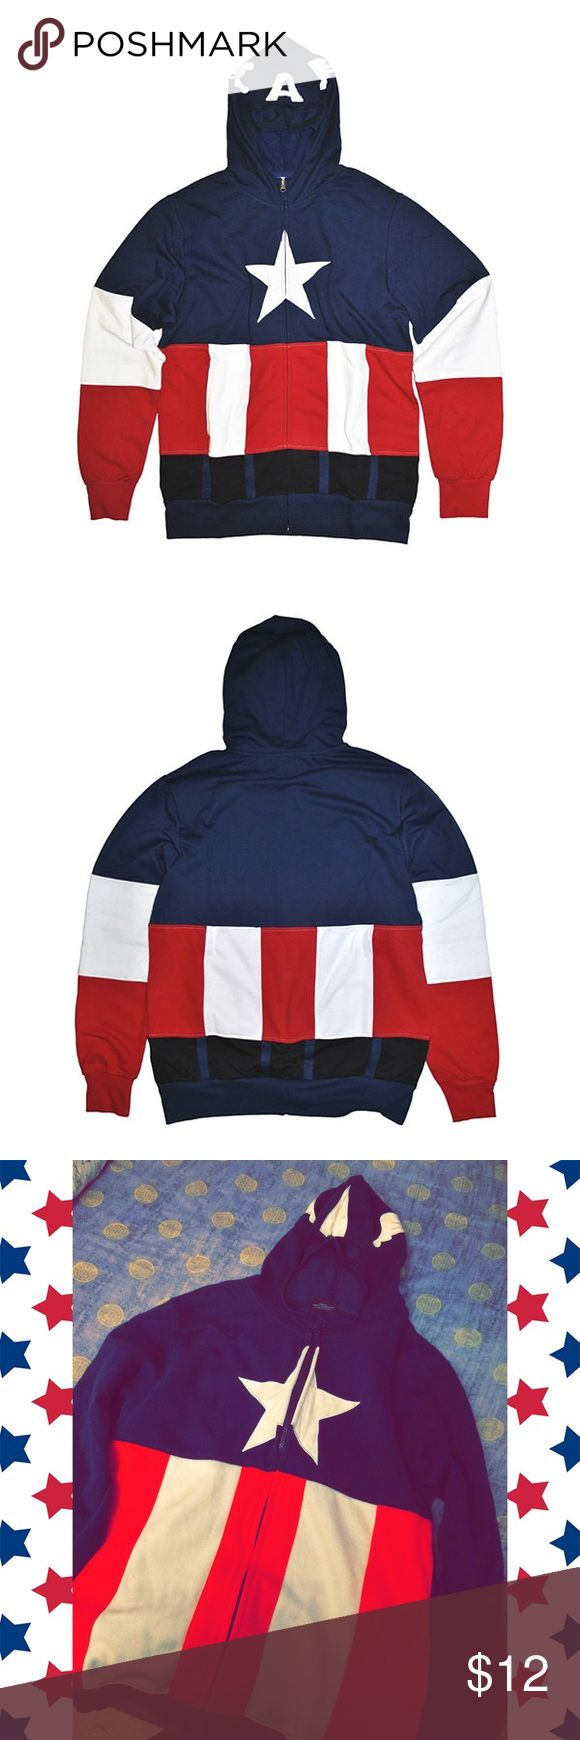 Captain America Cosplay Hoodie This is a Captain American Cosplay Hoodie, its has a fun hood that looks like Captain America's mask. It's been worn maybe once. Marvel Tops Sweatshirts & Hoodies